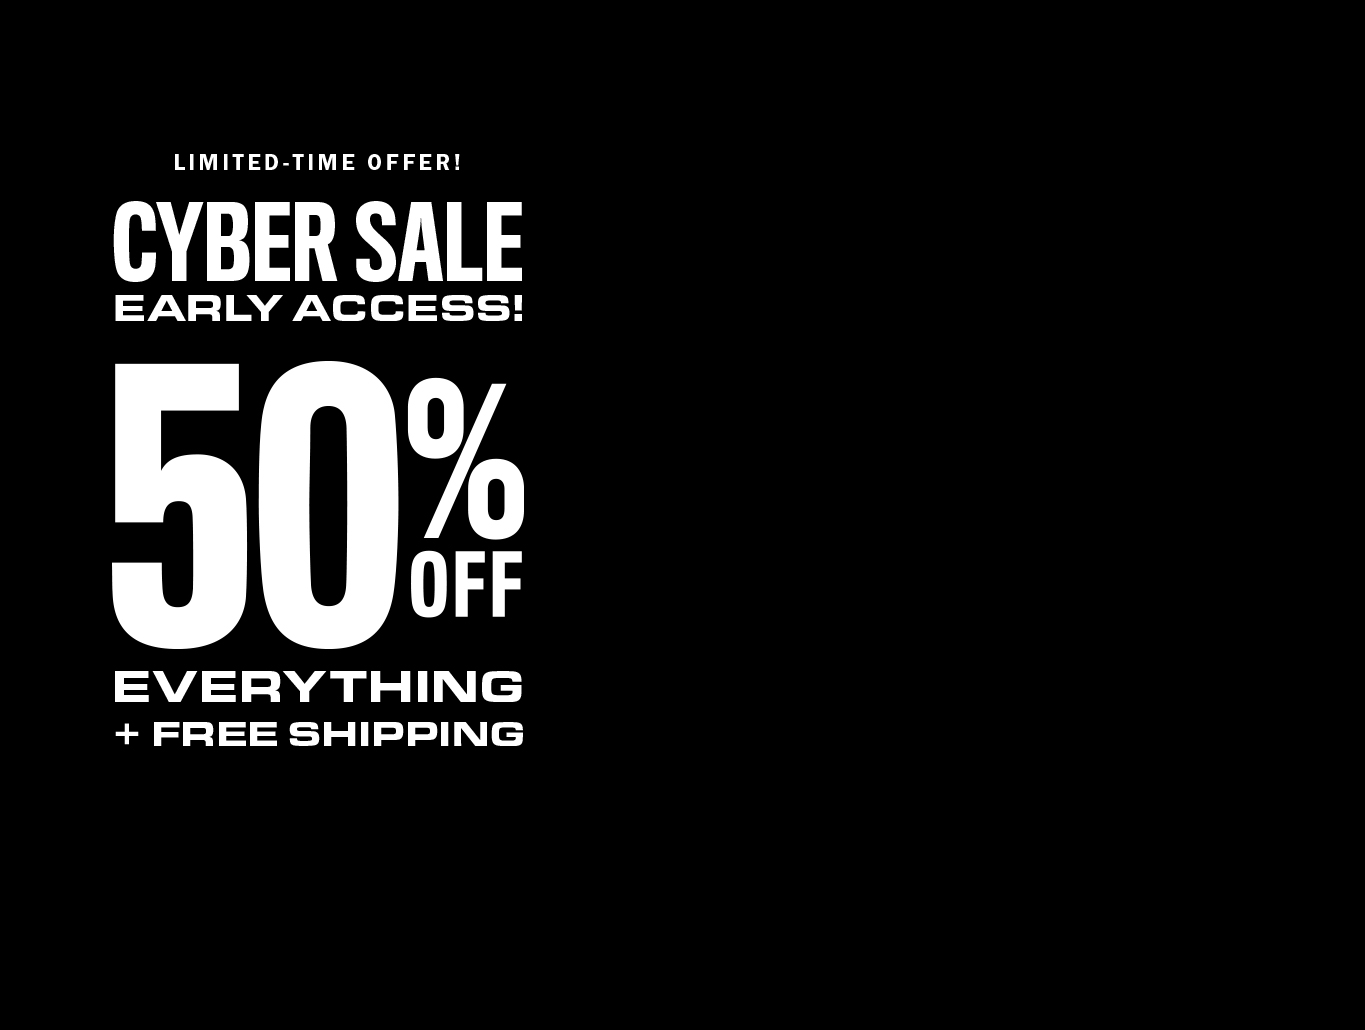 CYBER SALE! 50% OFF EVERYTHING!